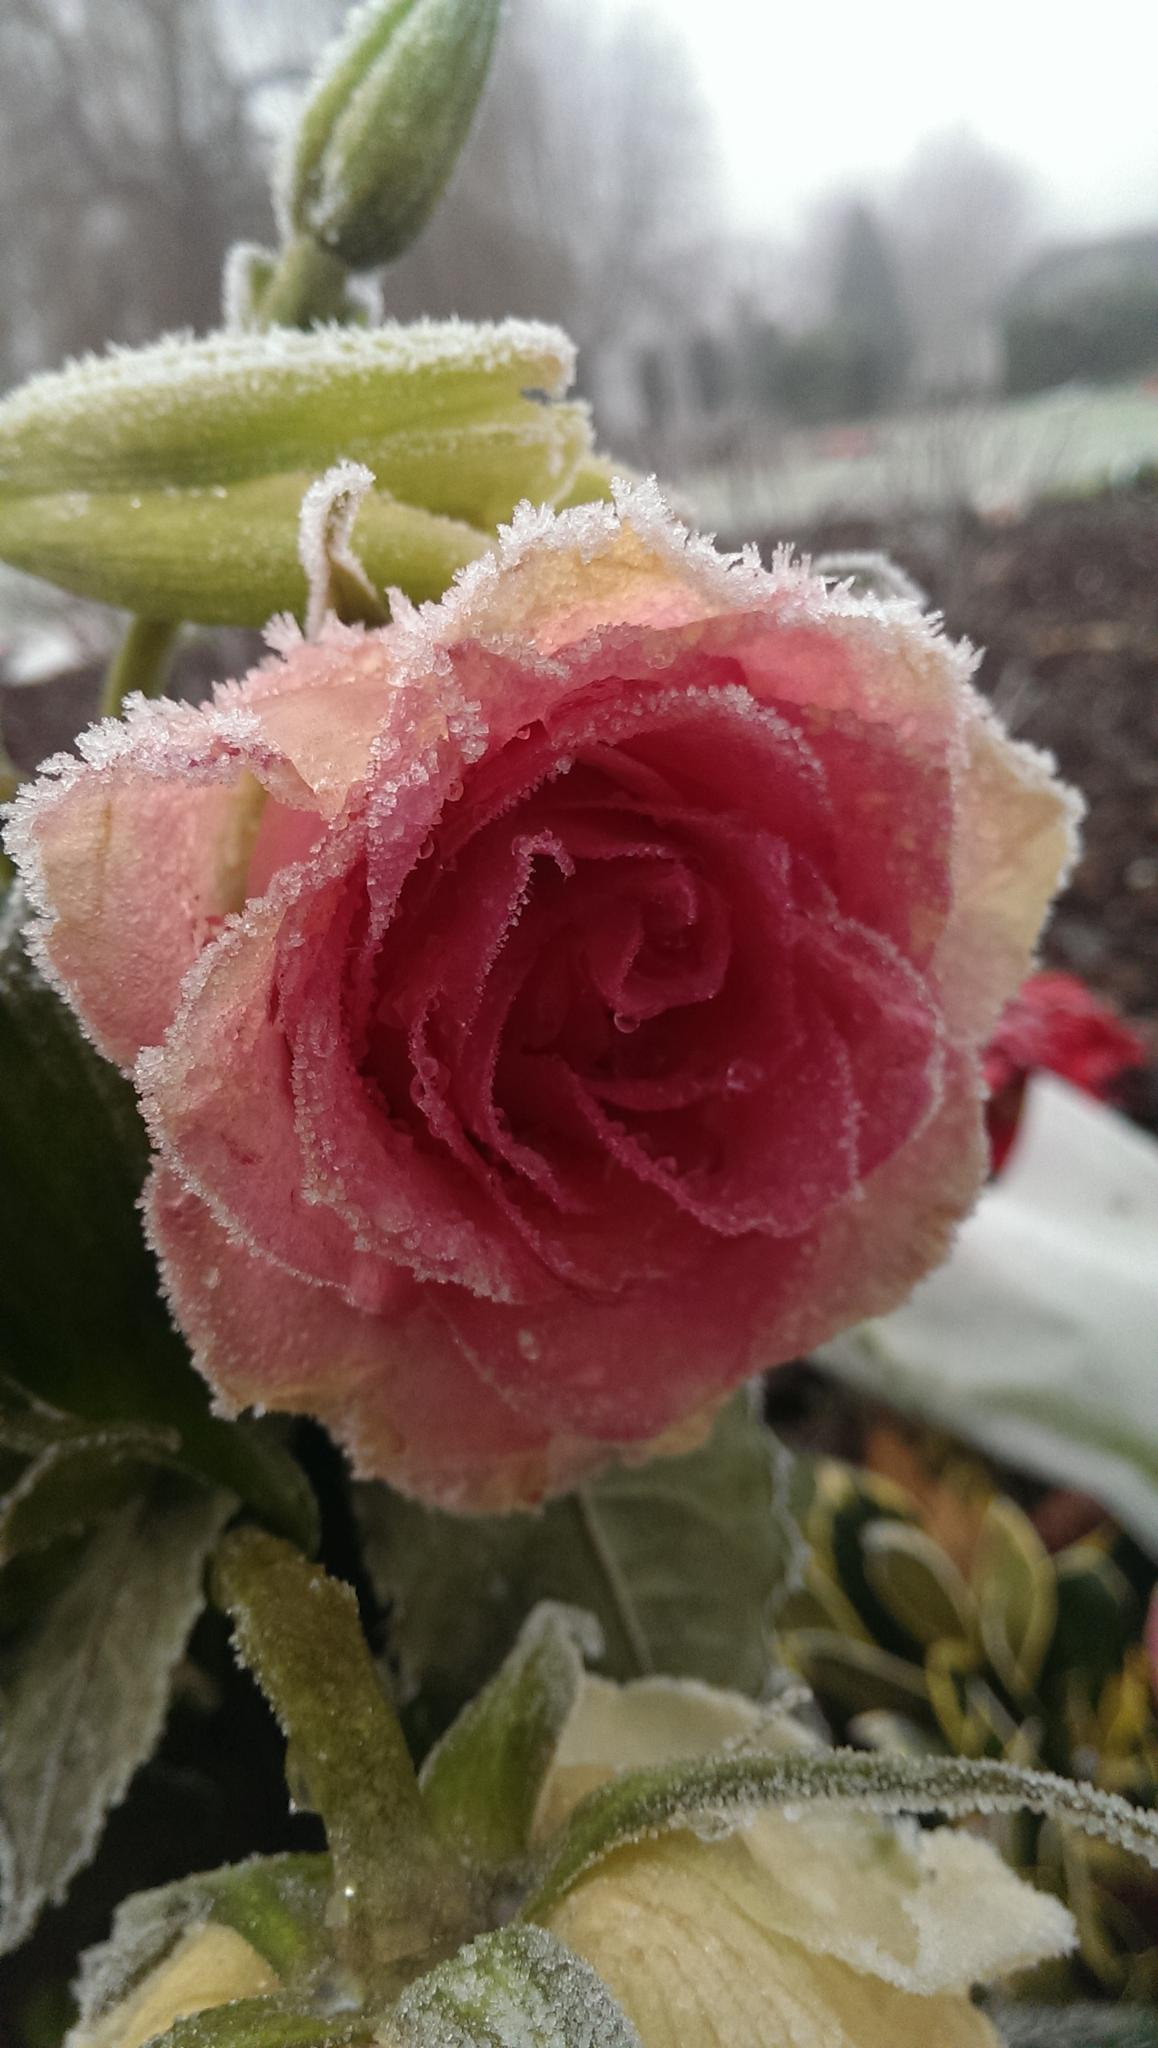 Frozen rose by Nige Photography